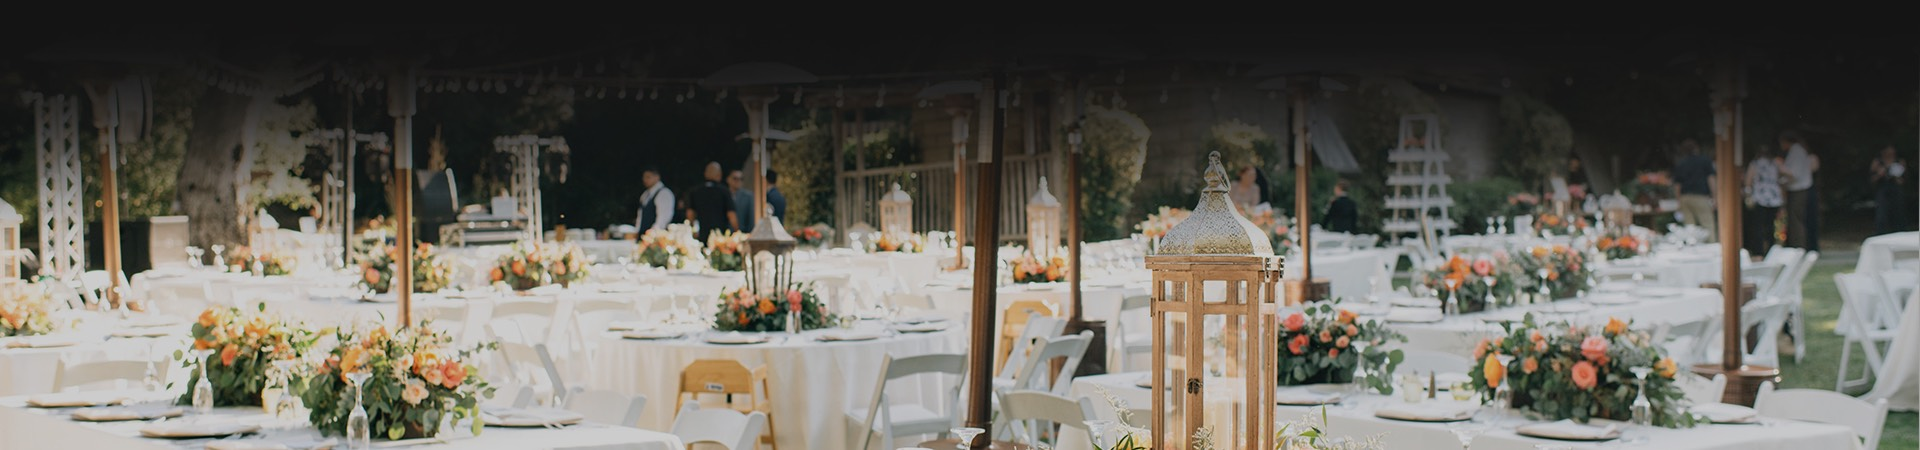 wedding reception tables set up outside with white tablecloths